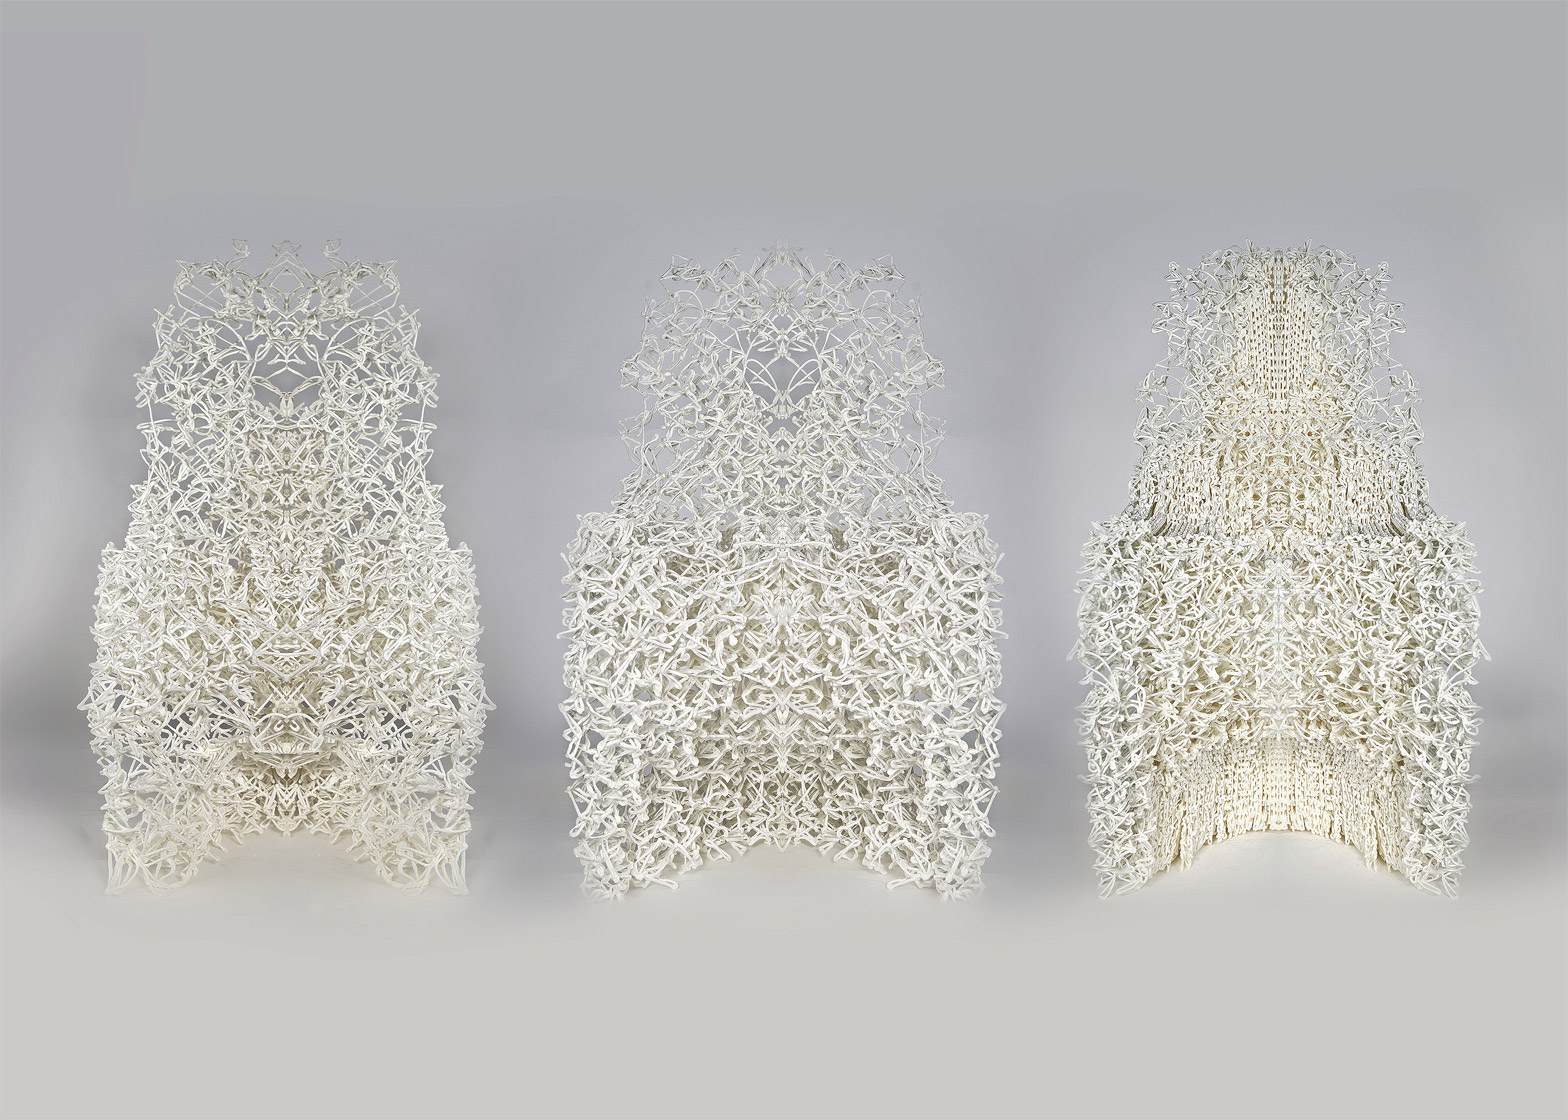 3D Printed Chair By The Barlett UCL Students